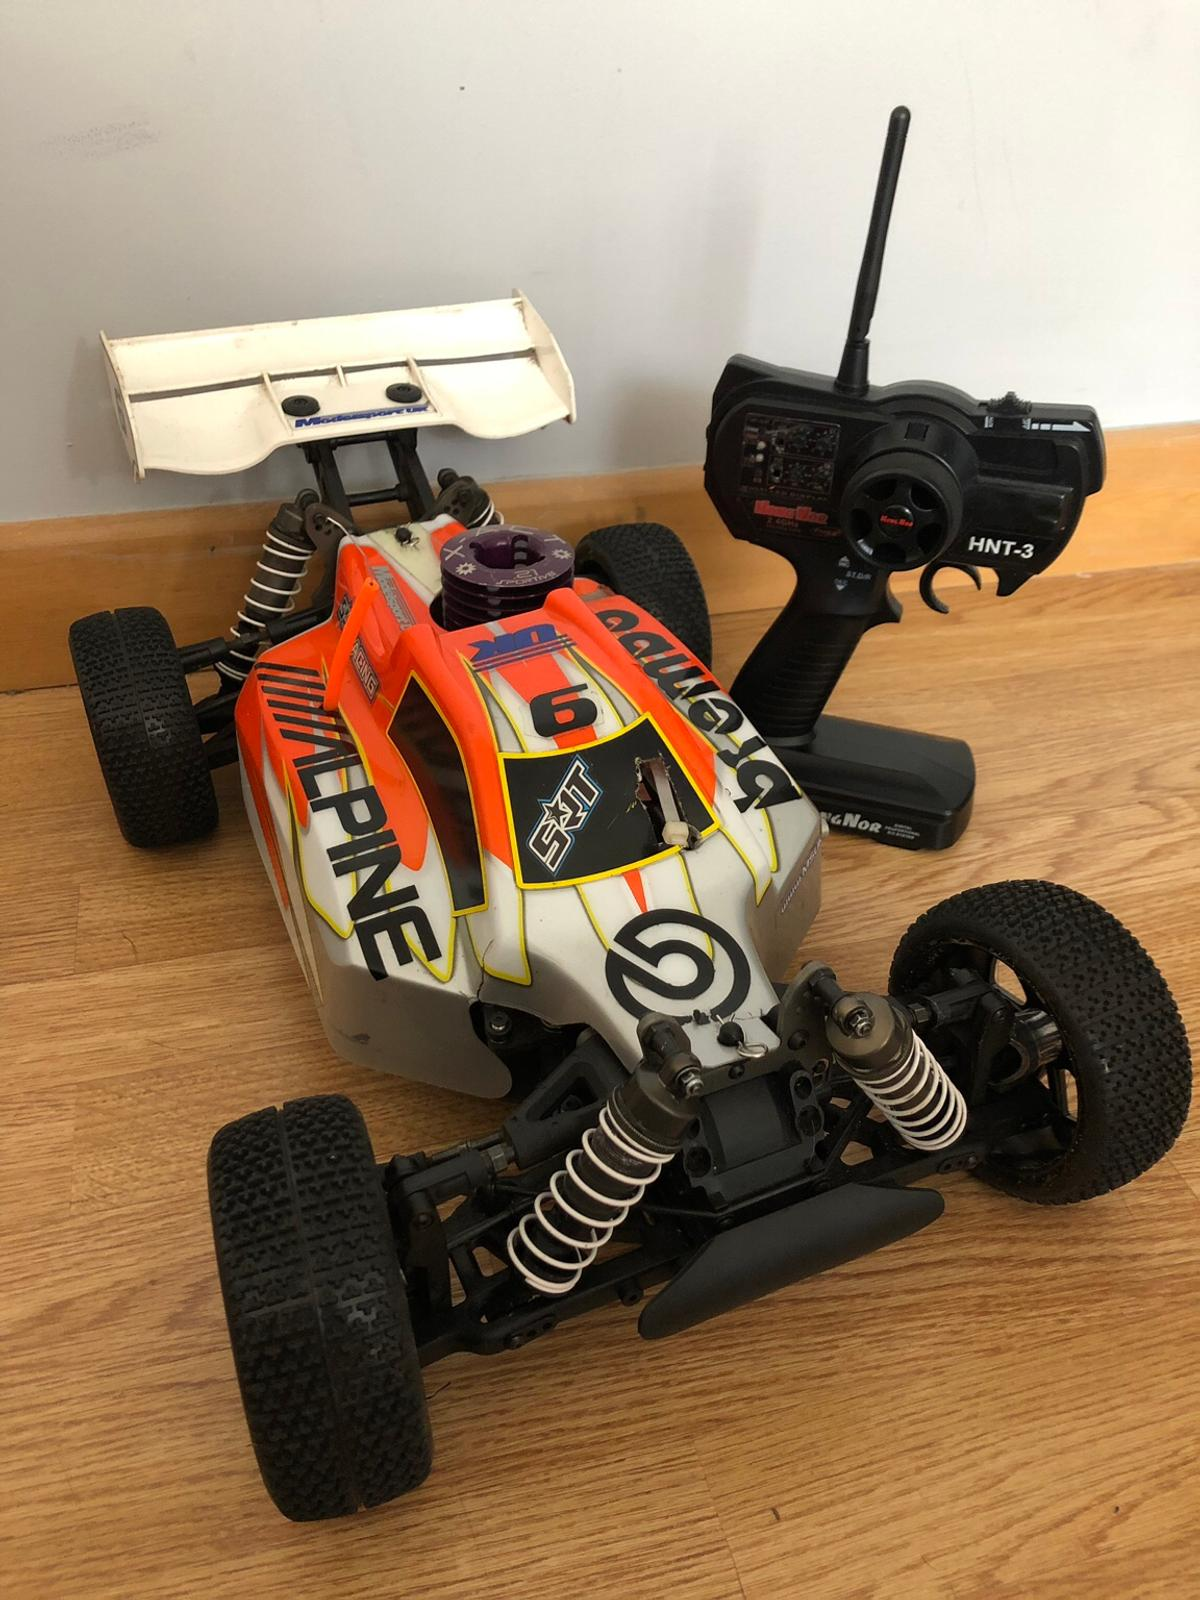 1/8 Nitro hong nor buggy in TR1 Truro for £145 00 for sale - Shpock